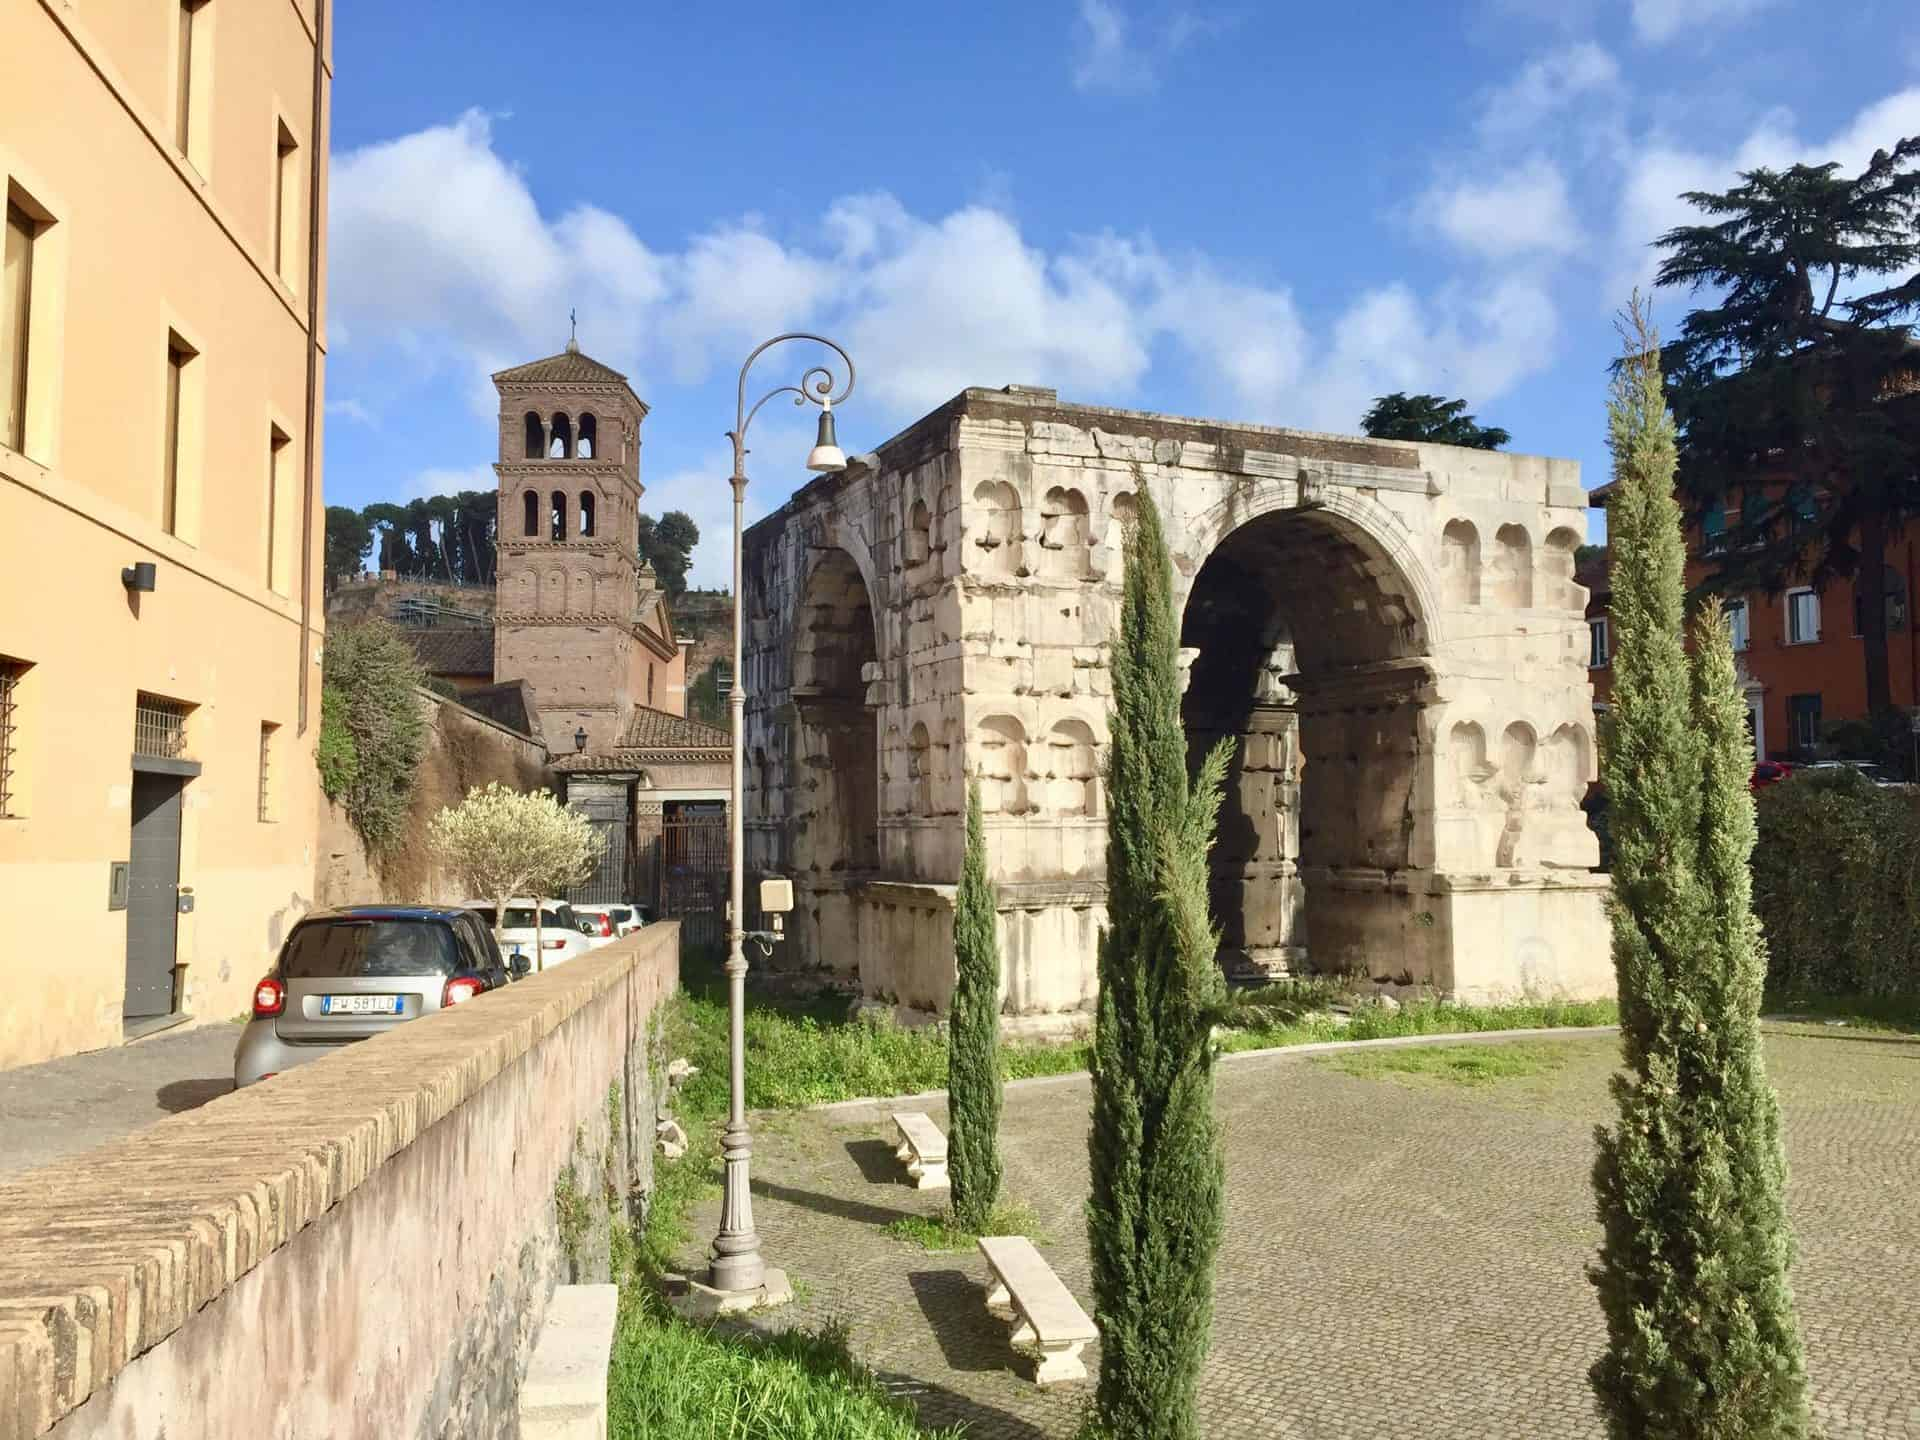 rome_fromcapitoline6) Arch of Janus